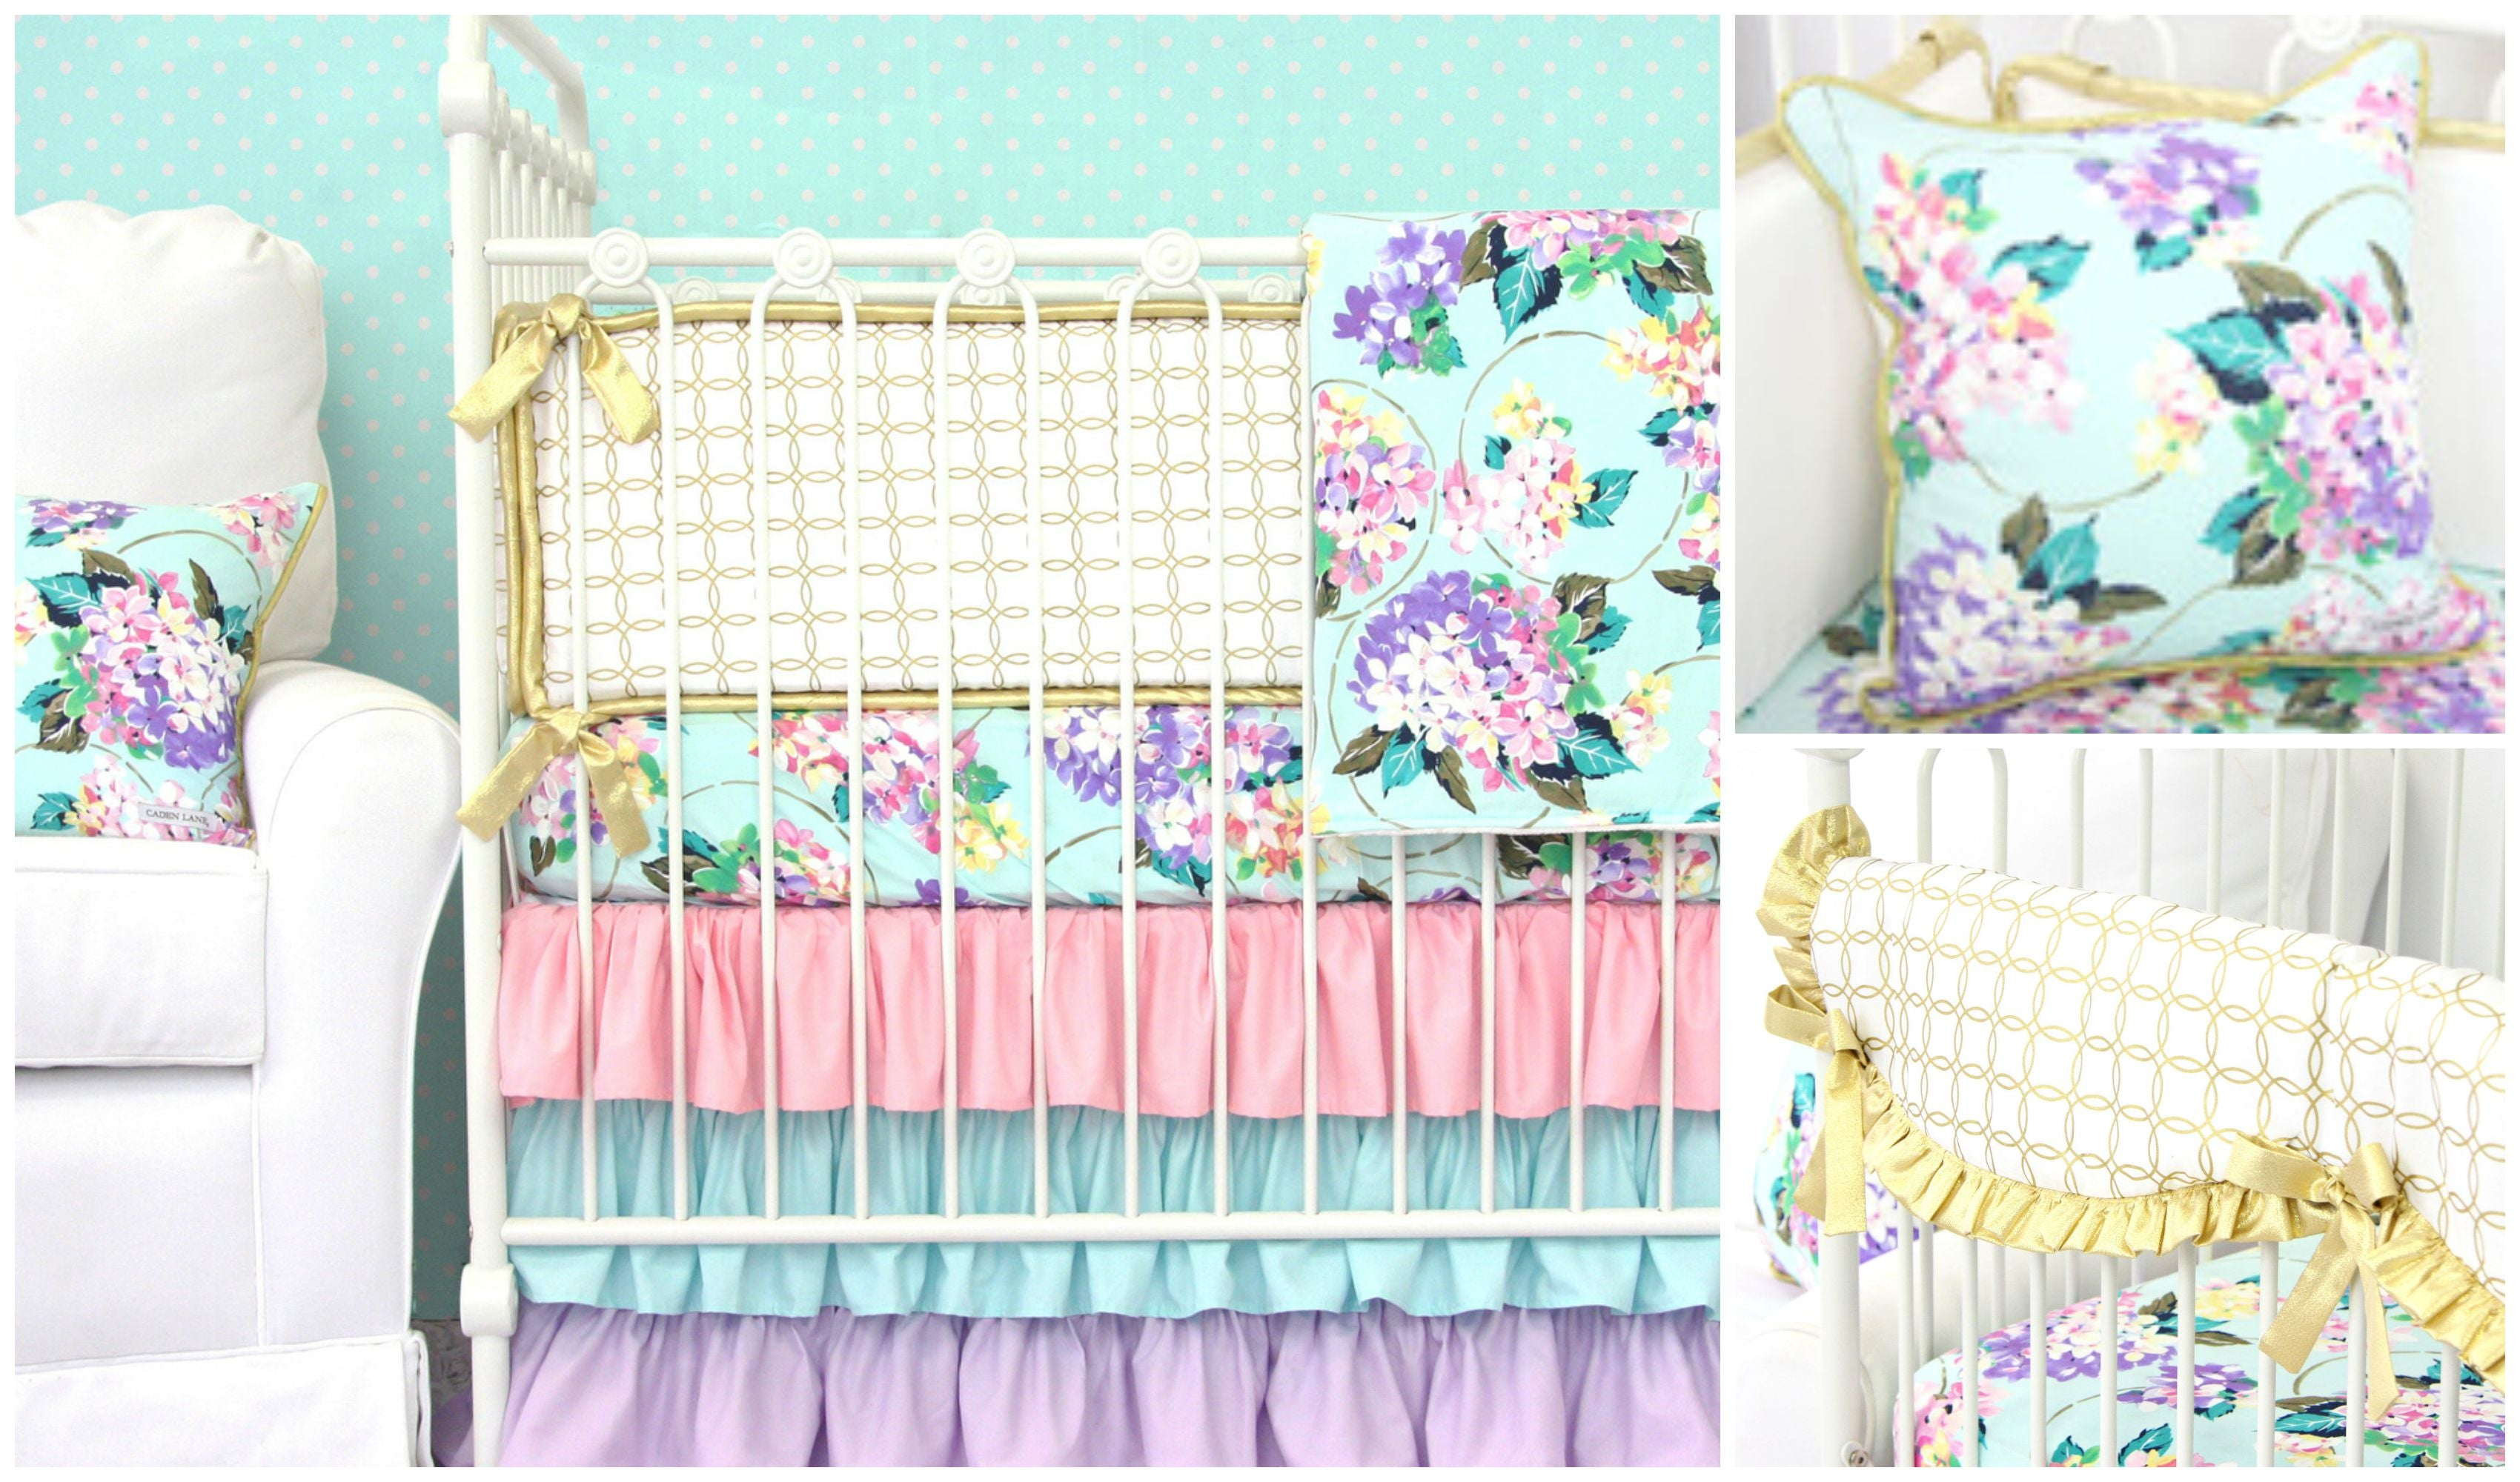 floral crib bedding for an aqua nursery design